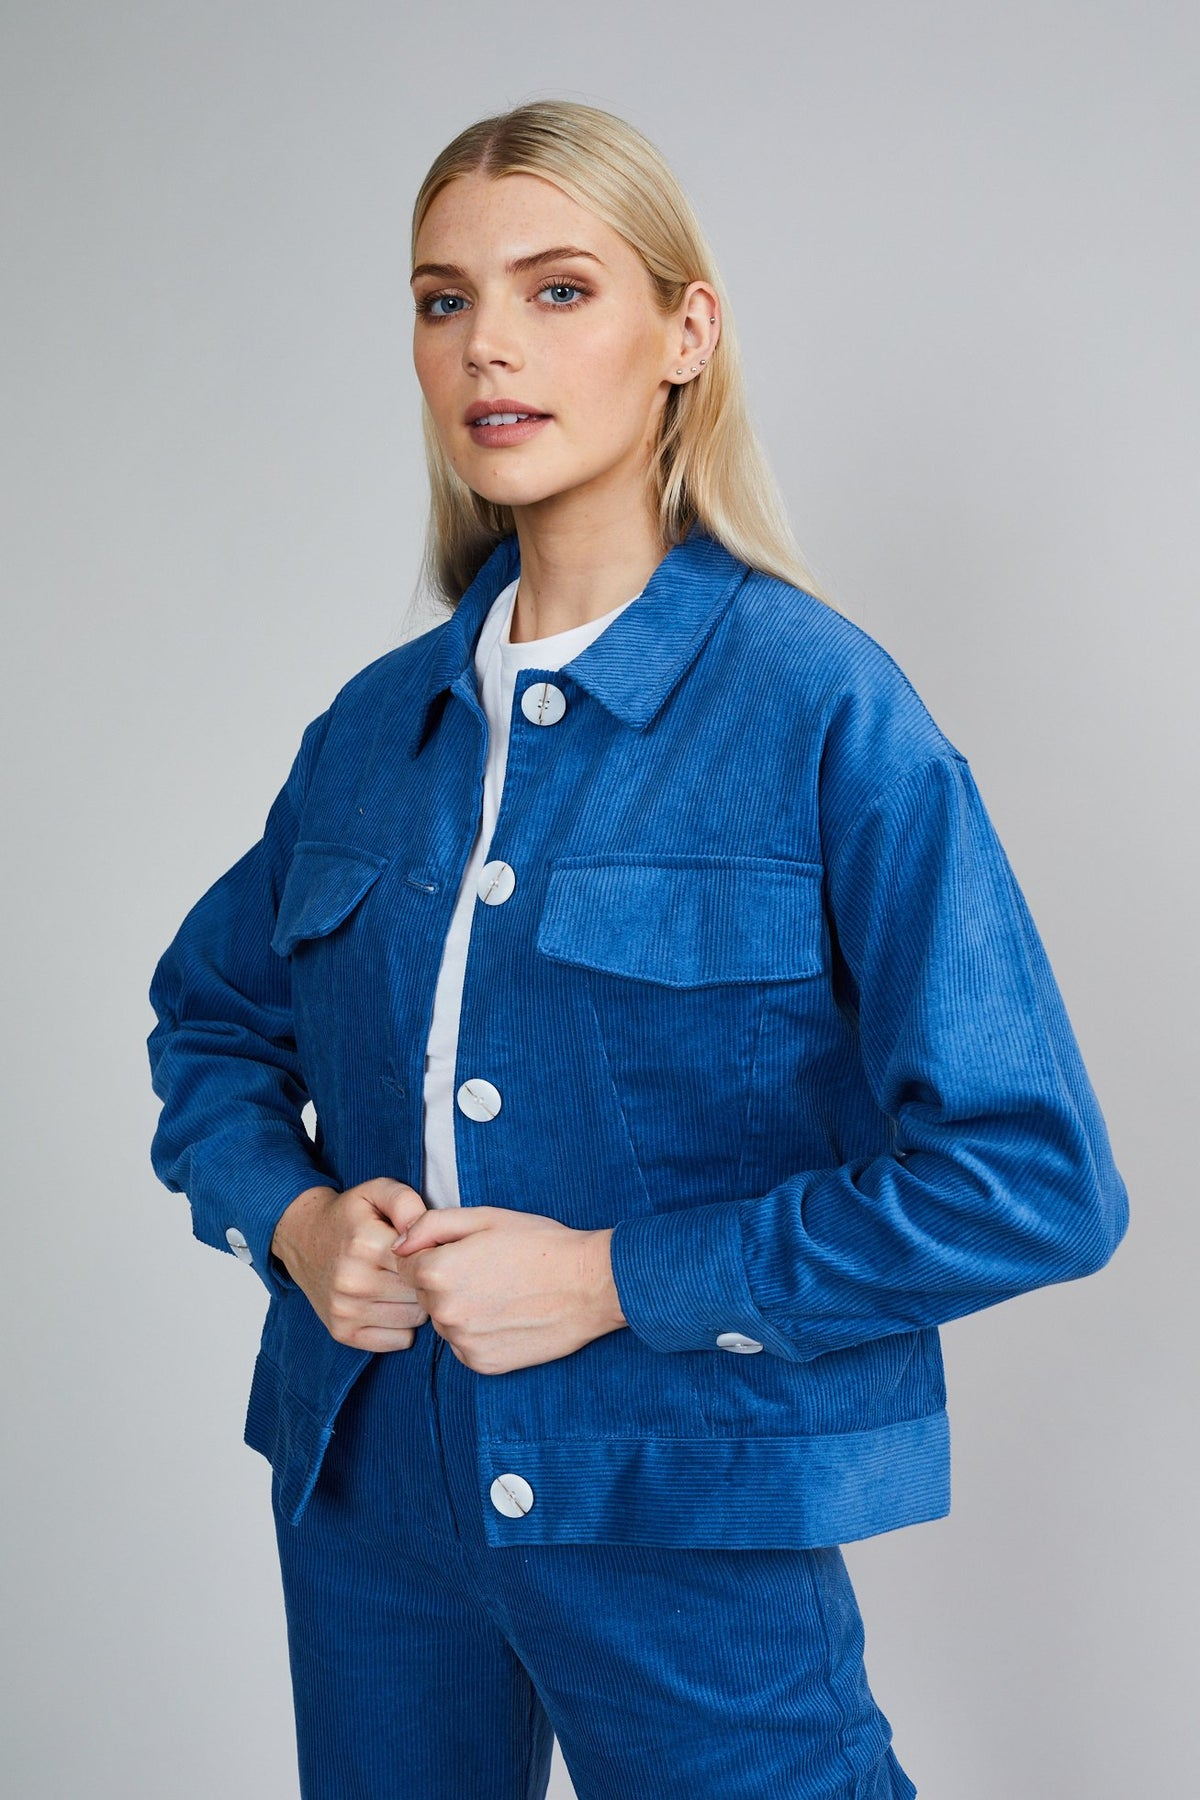 THE GLORIA JACKET